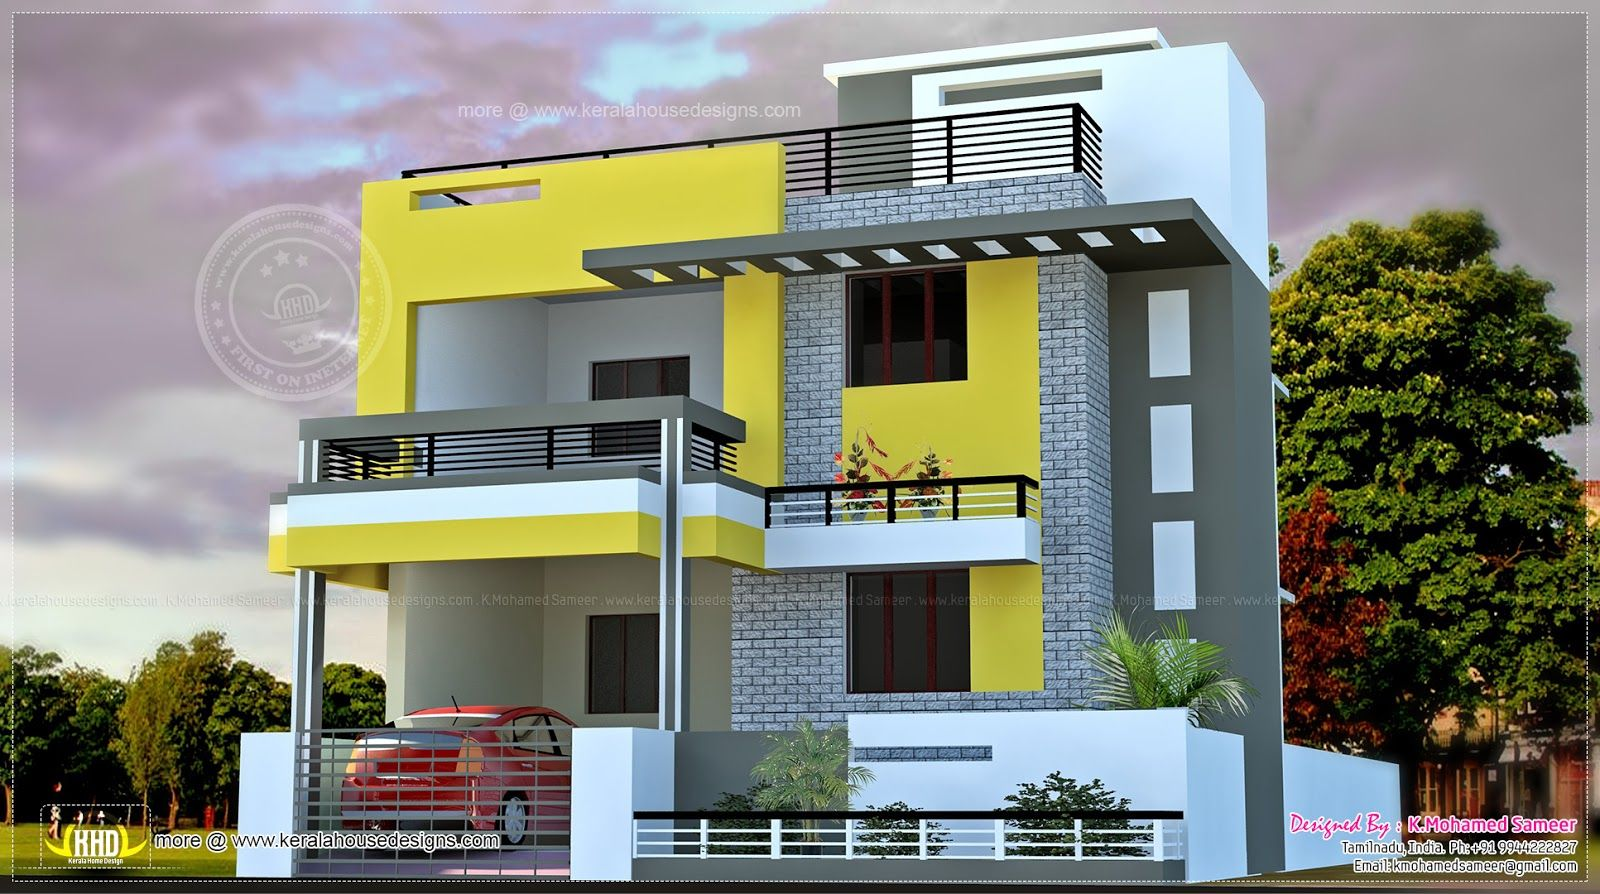 394065036126551809 on Front Elevation Indian House Designs